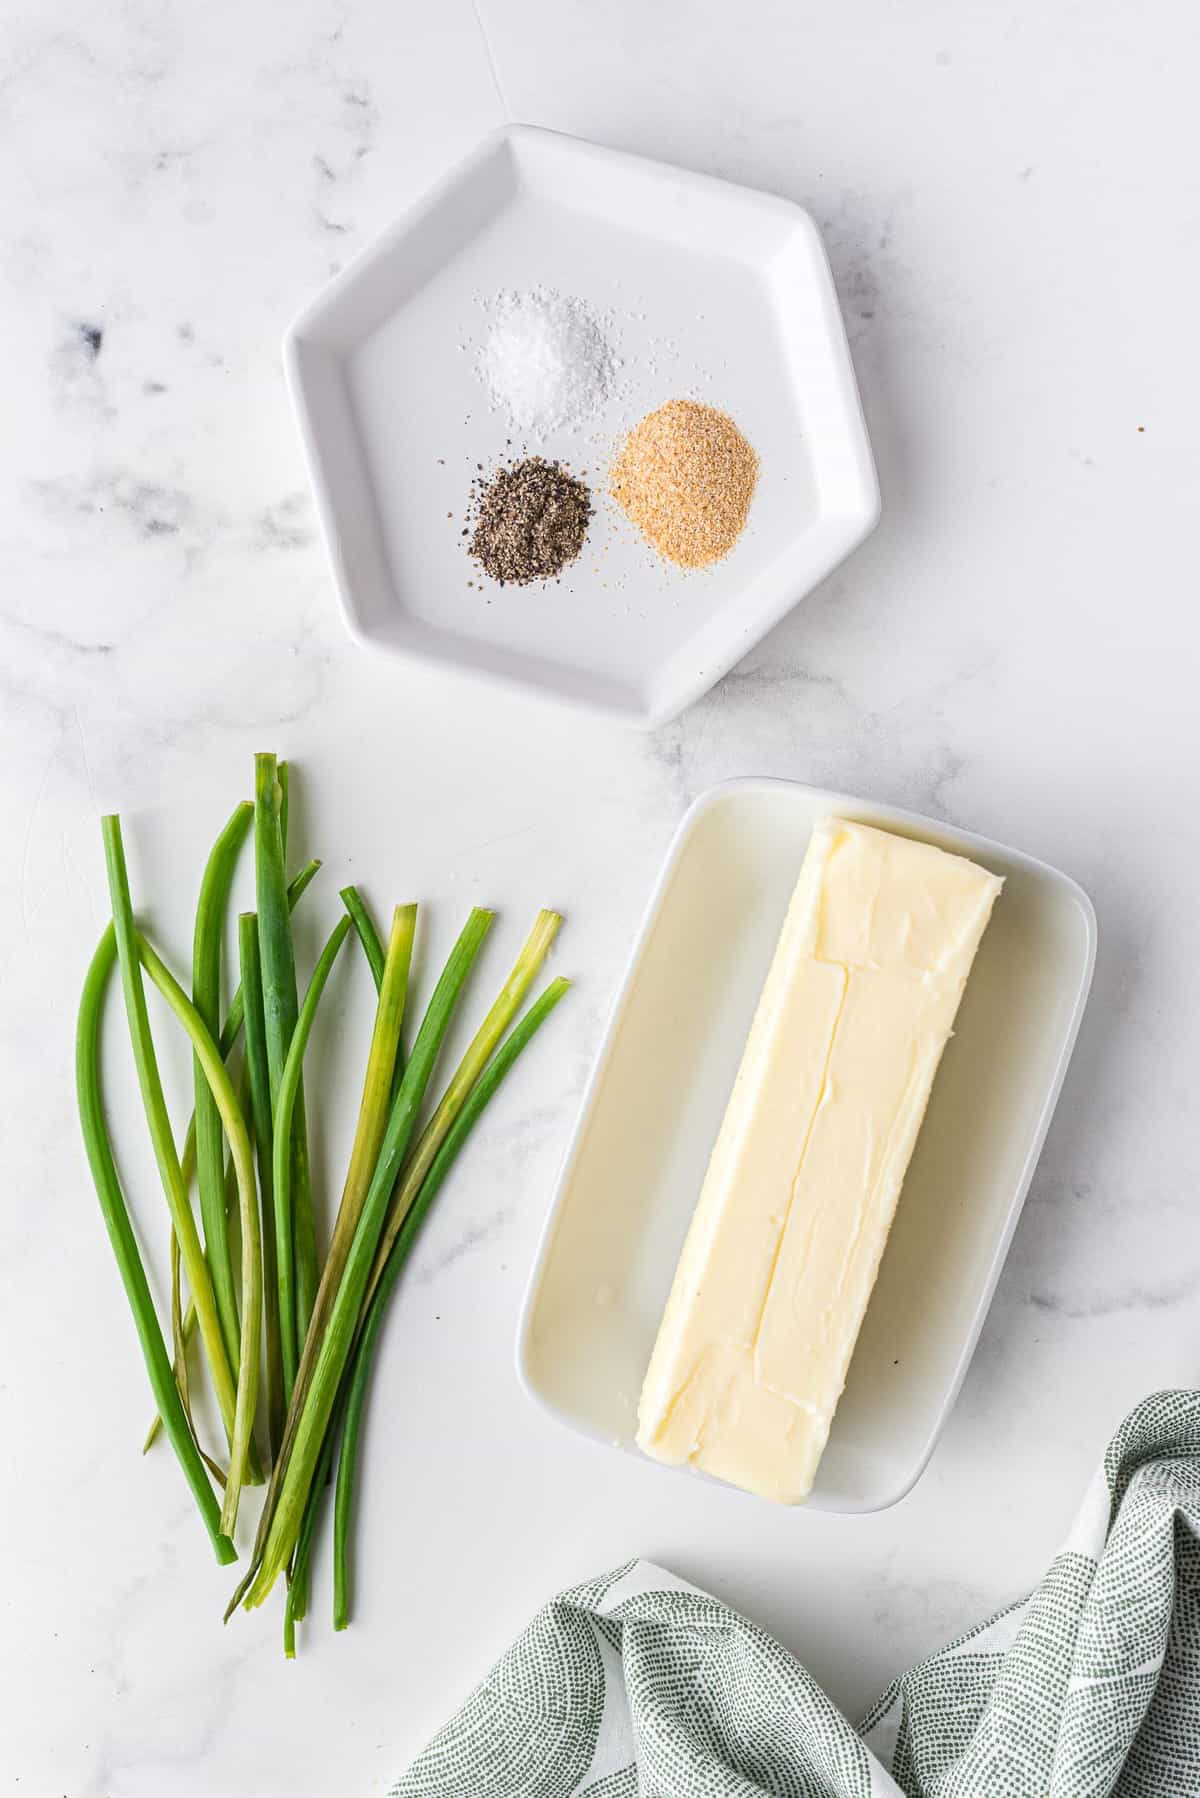 Overhead view of a stick of butter, chives, and assorted seasonings.